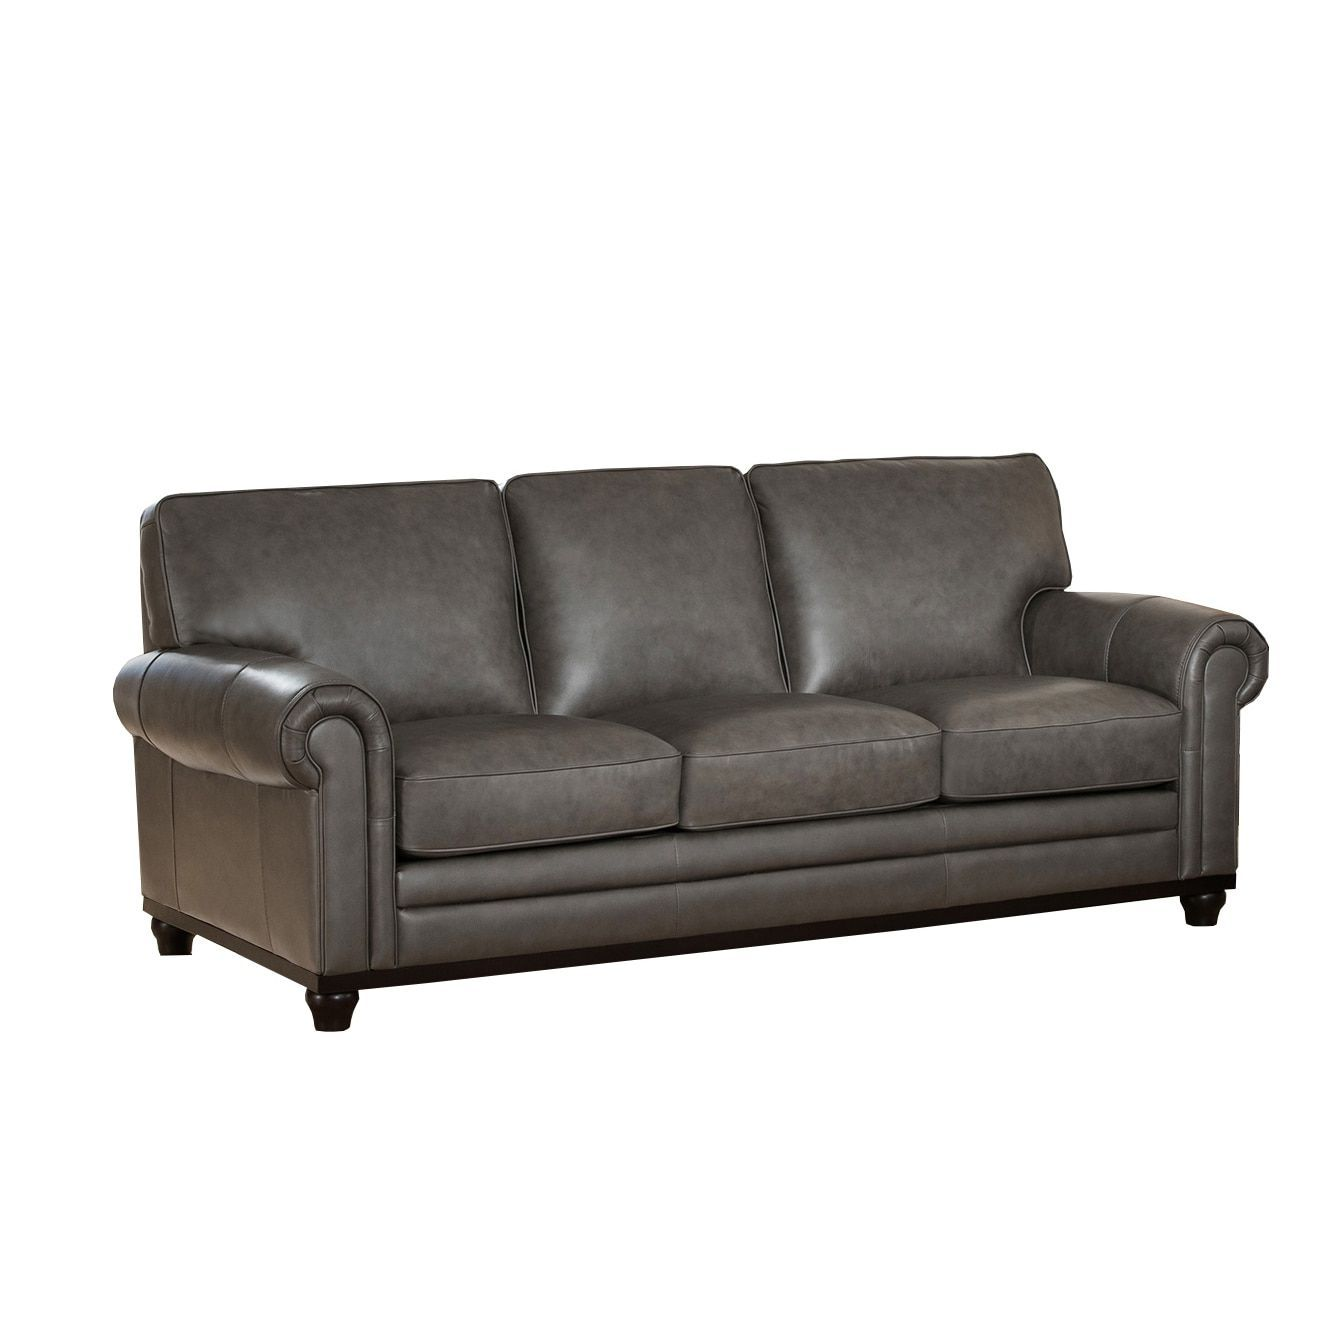 Stafford Top Grain Grey Leather Sofa Ping The Best Deals On Sofas Loveseats